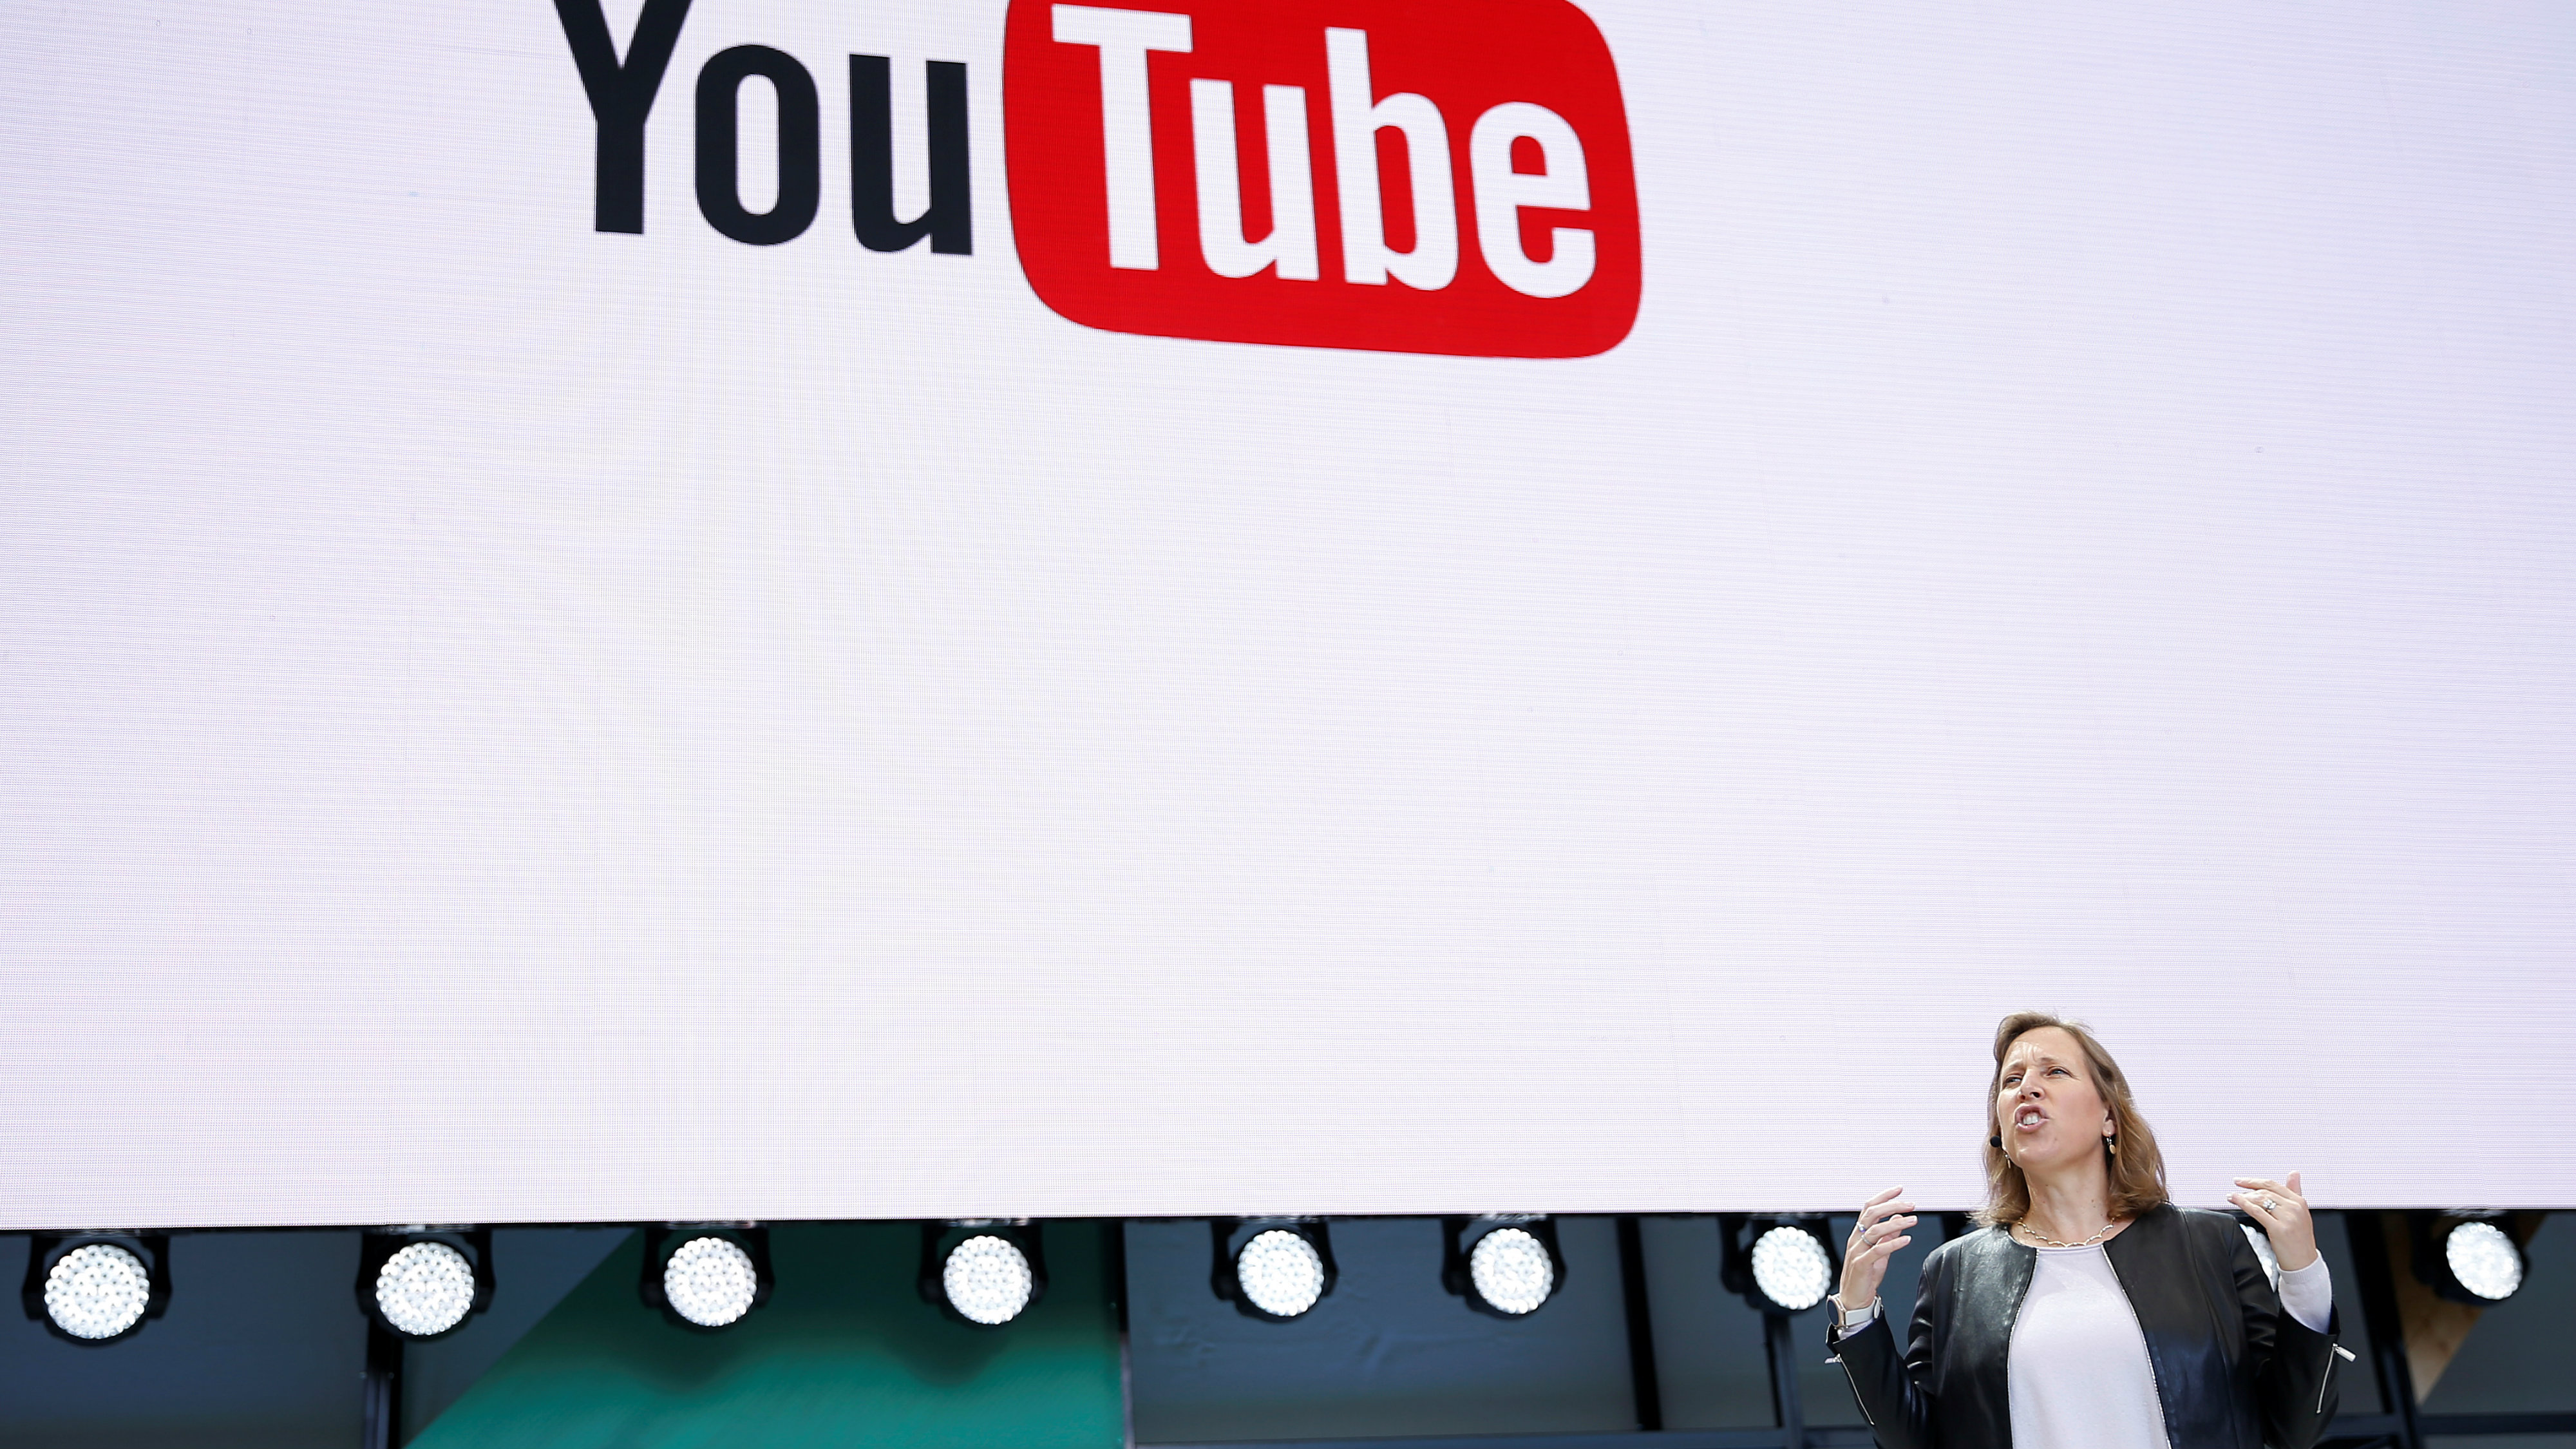 YouTube CEO Susan Wojcicki speaks on stage during the annual Google I/O developers conference in San Jose, California